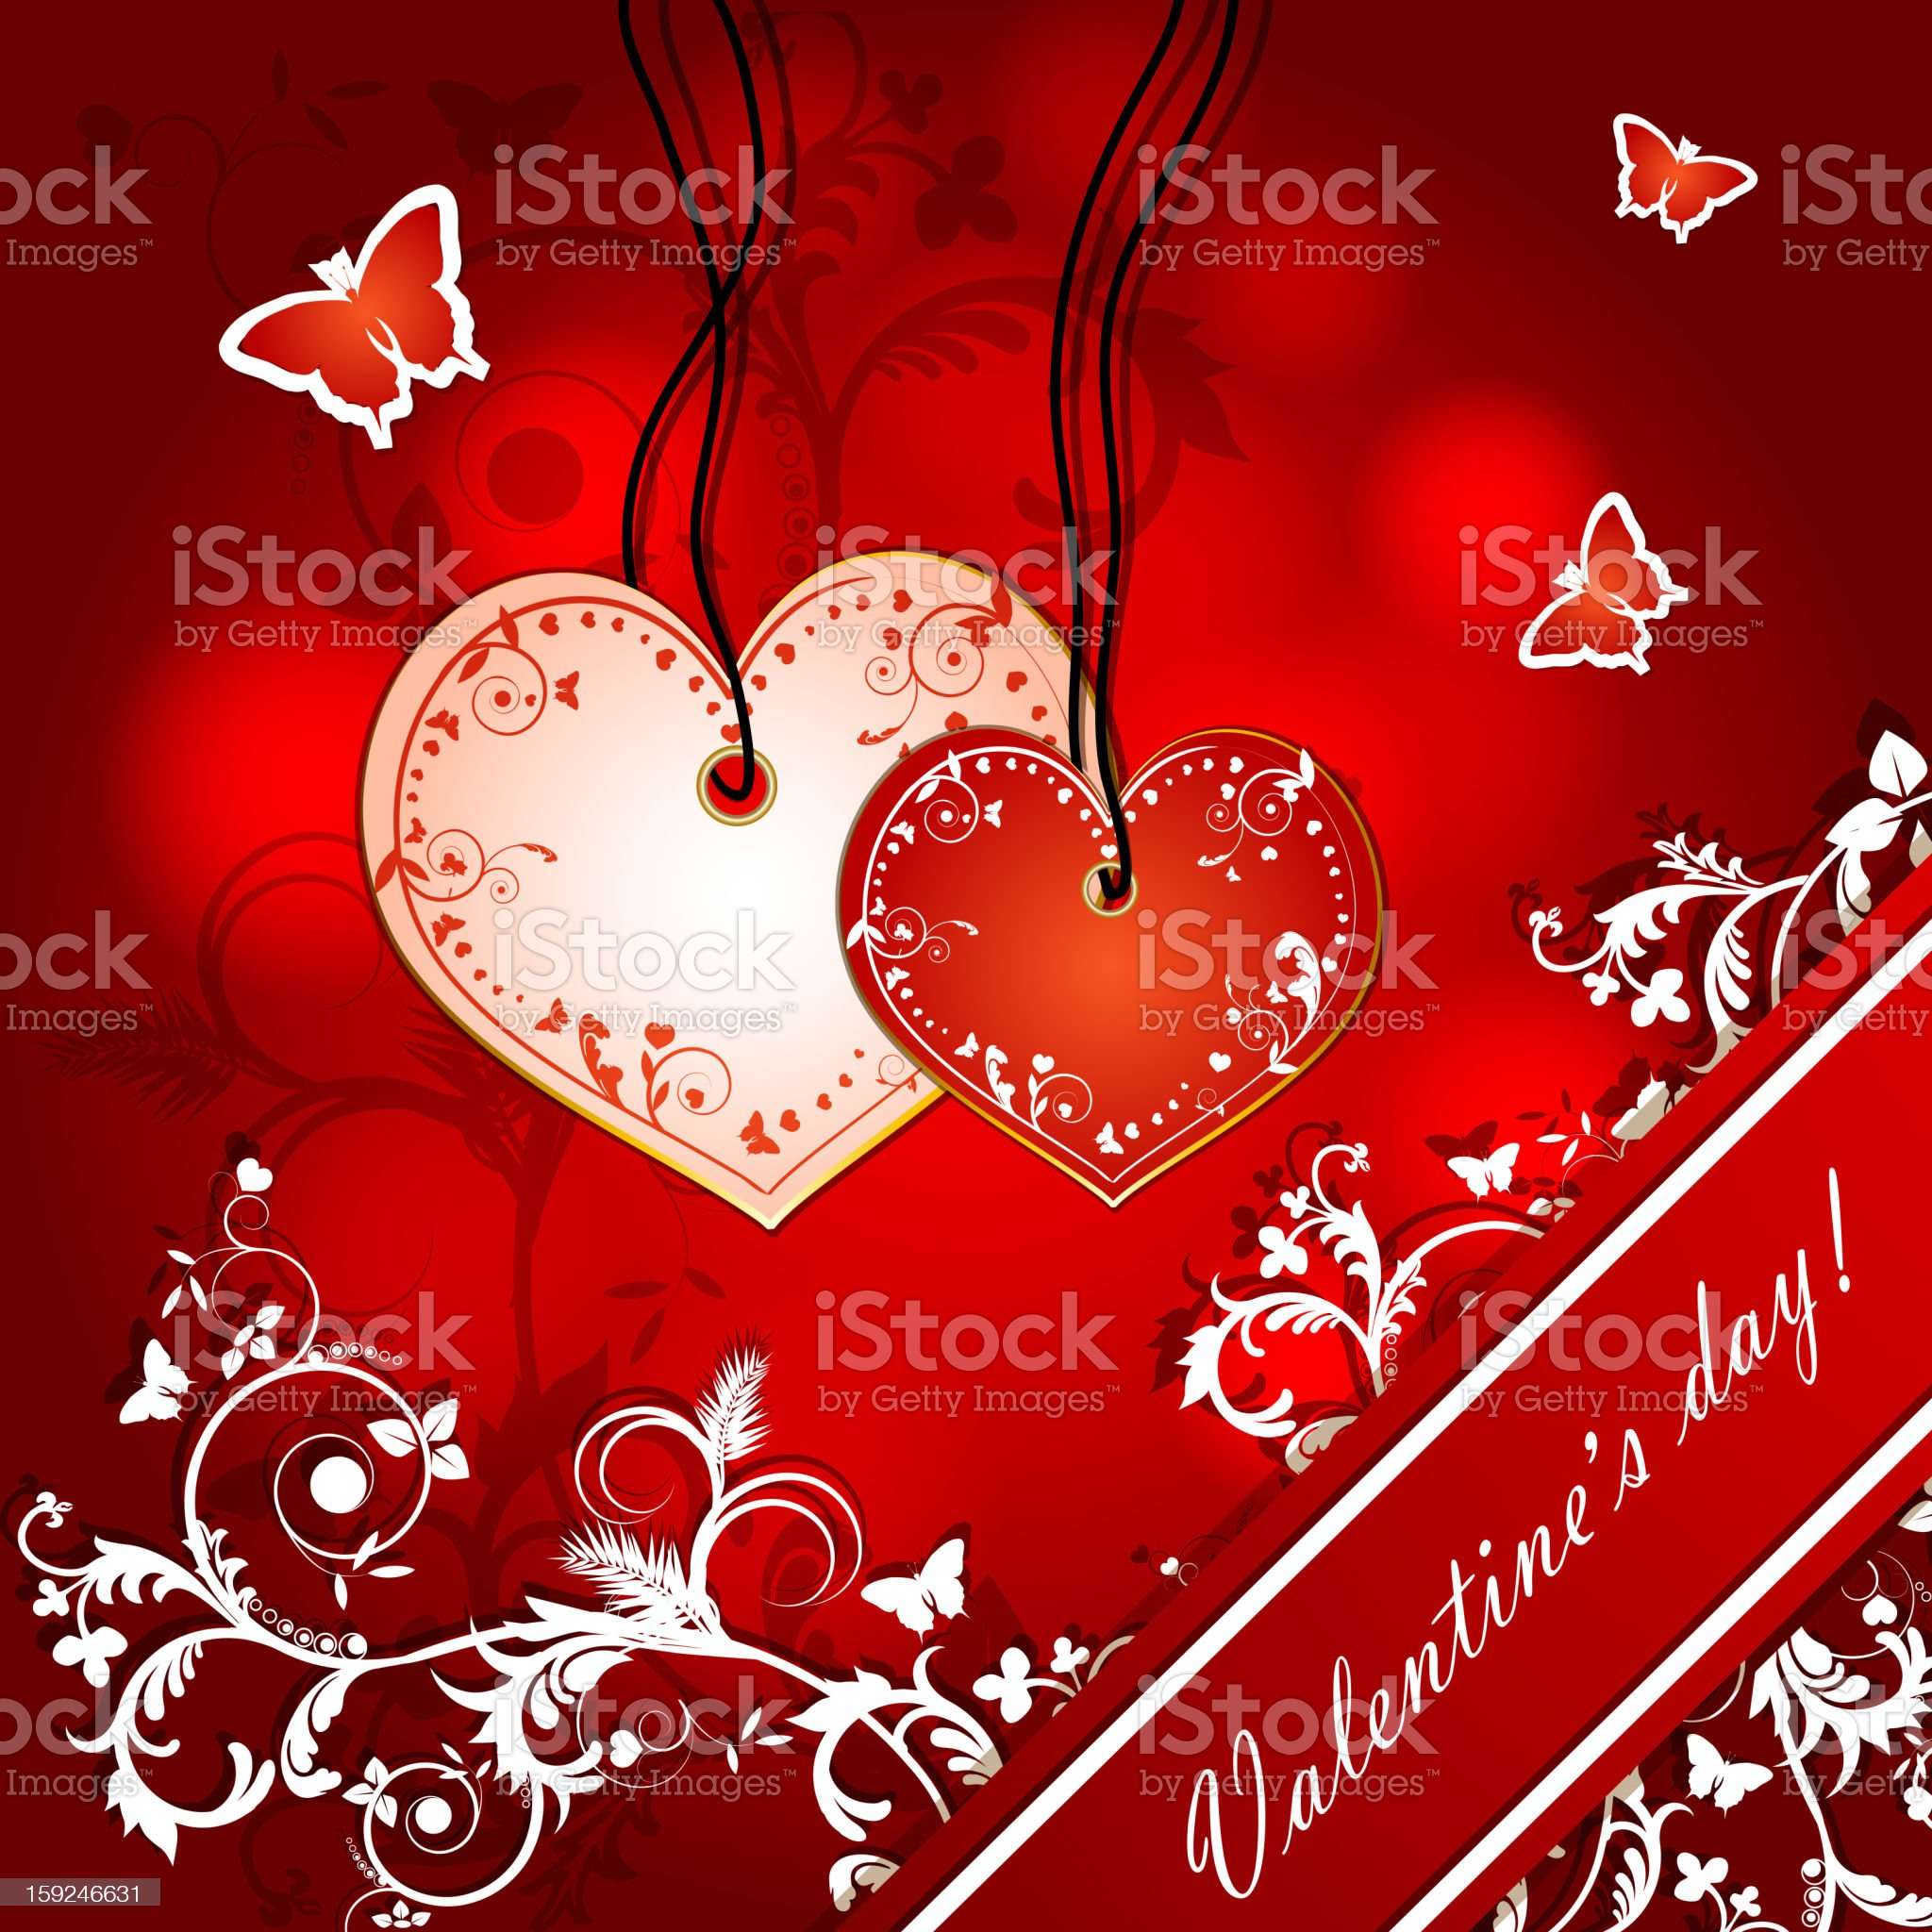 Illustration with hearts of love royalty-free stock vector art